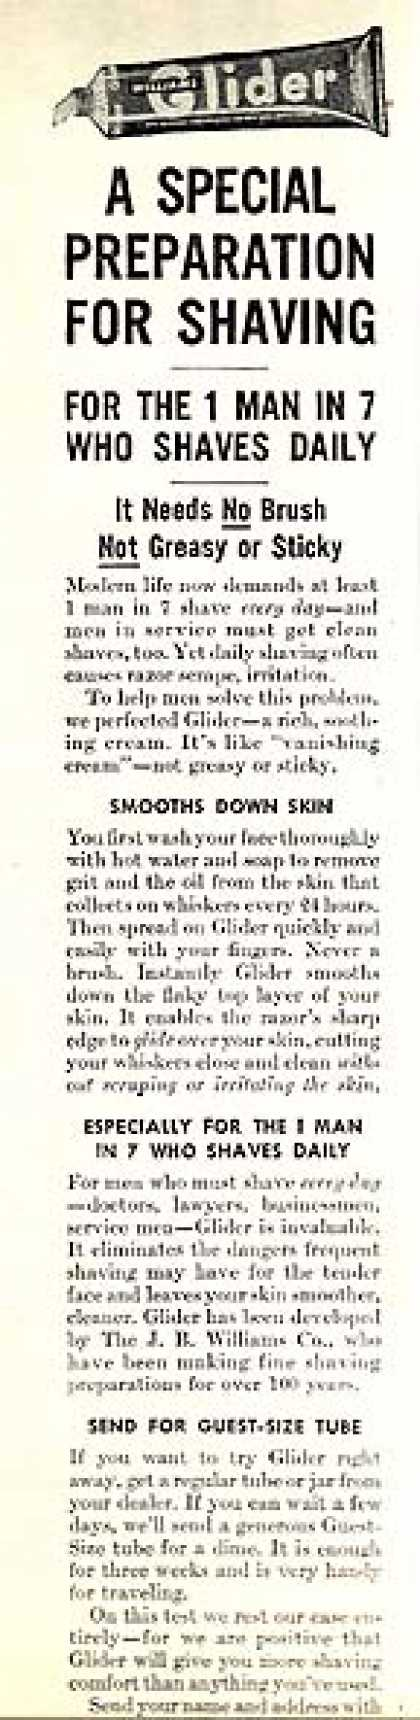 Glider's Shaving Cream in a Tube (1945)